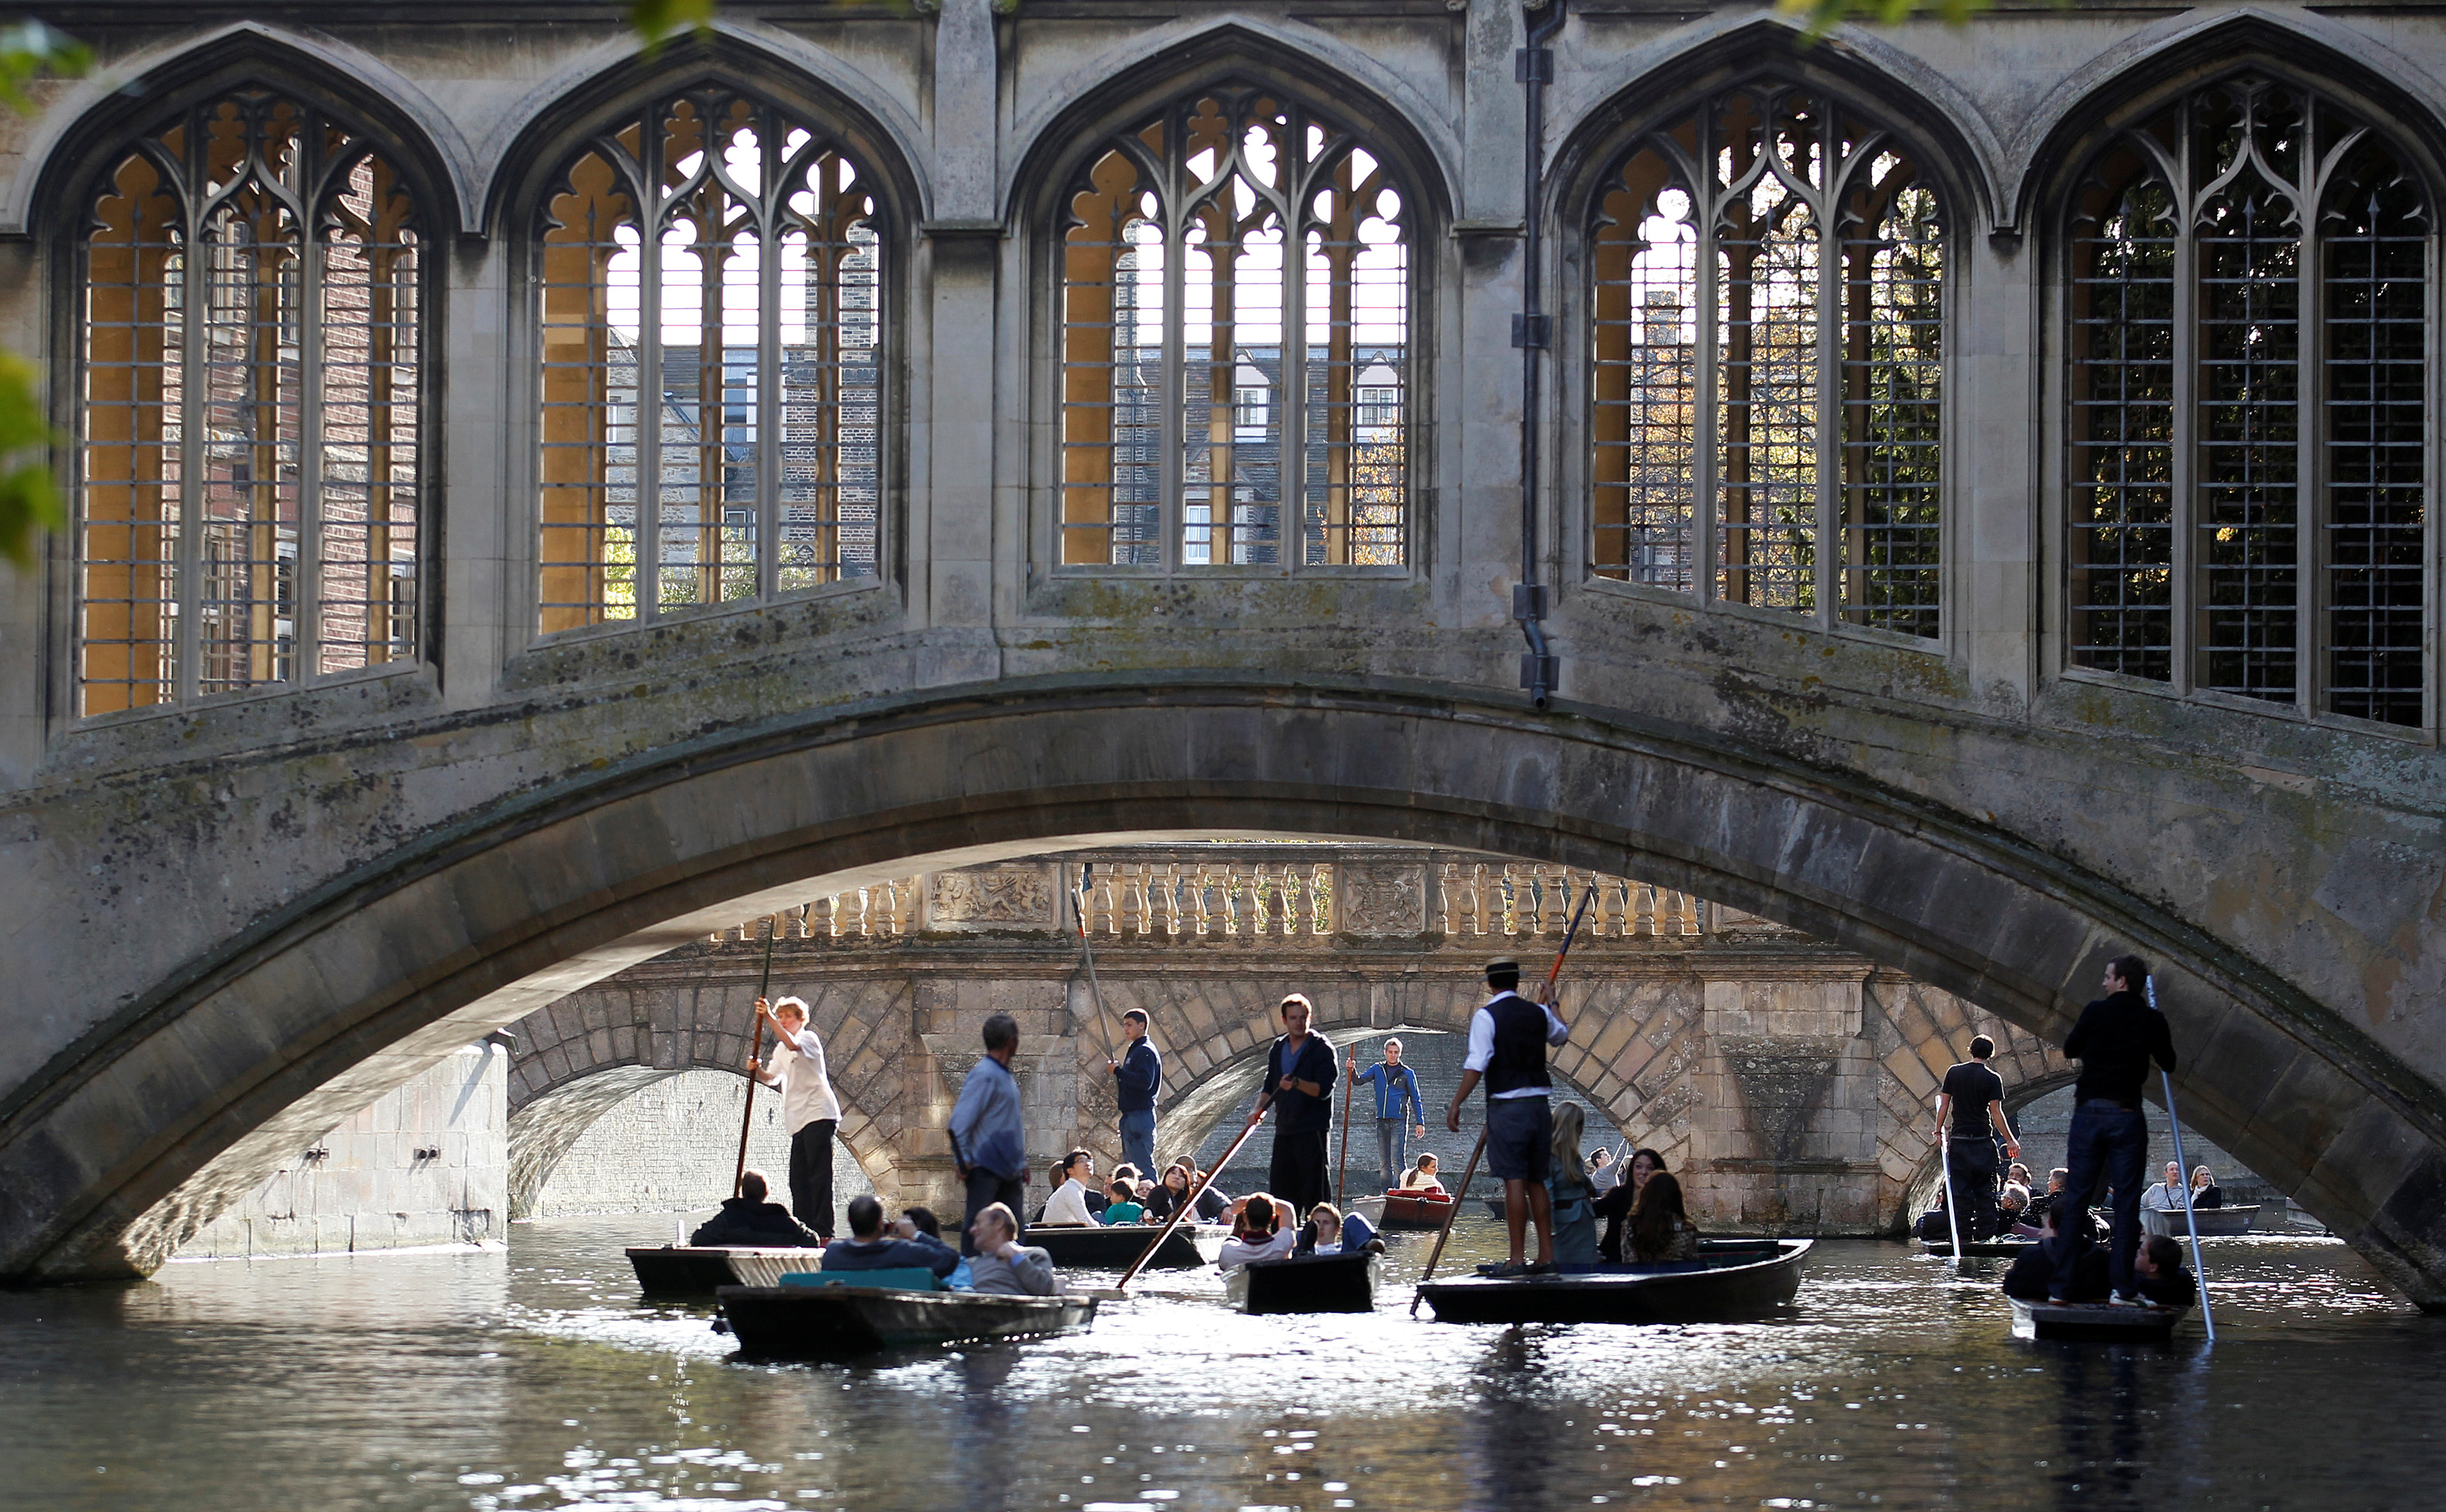 Cambridge University and punters on the River Cam